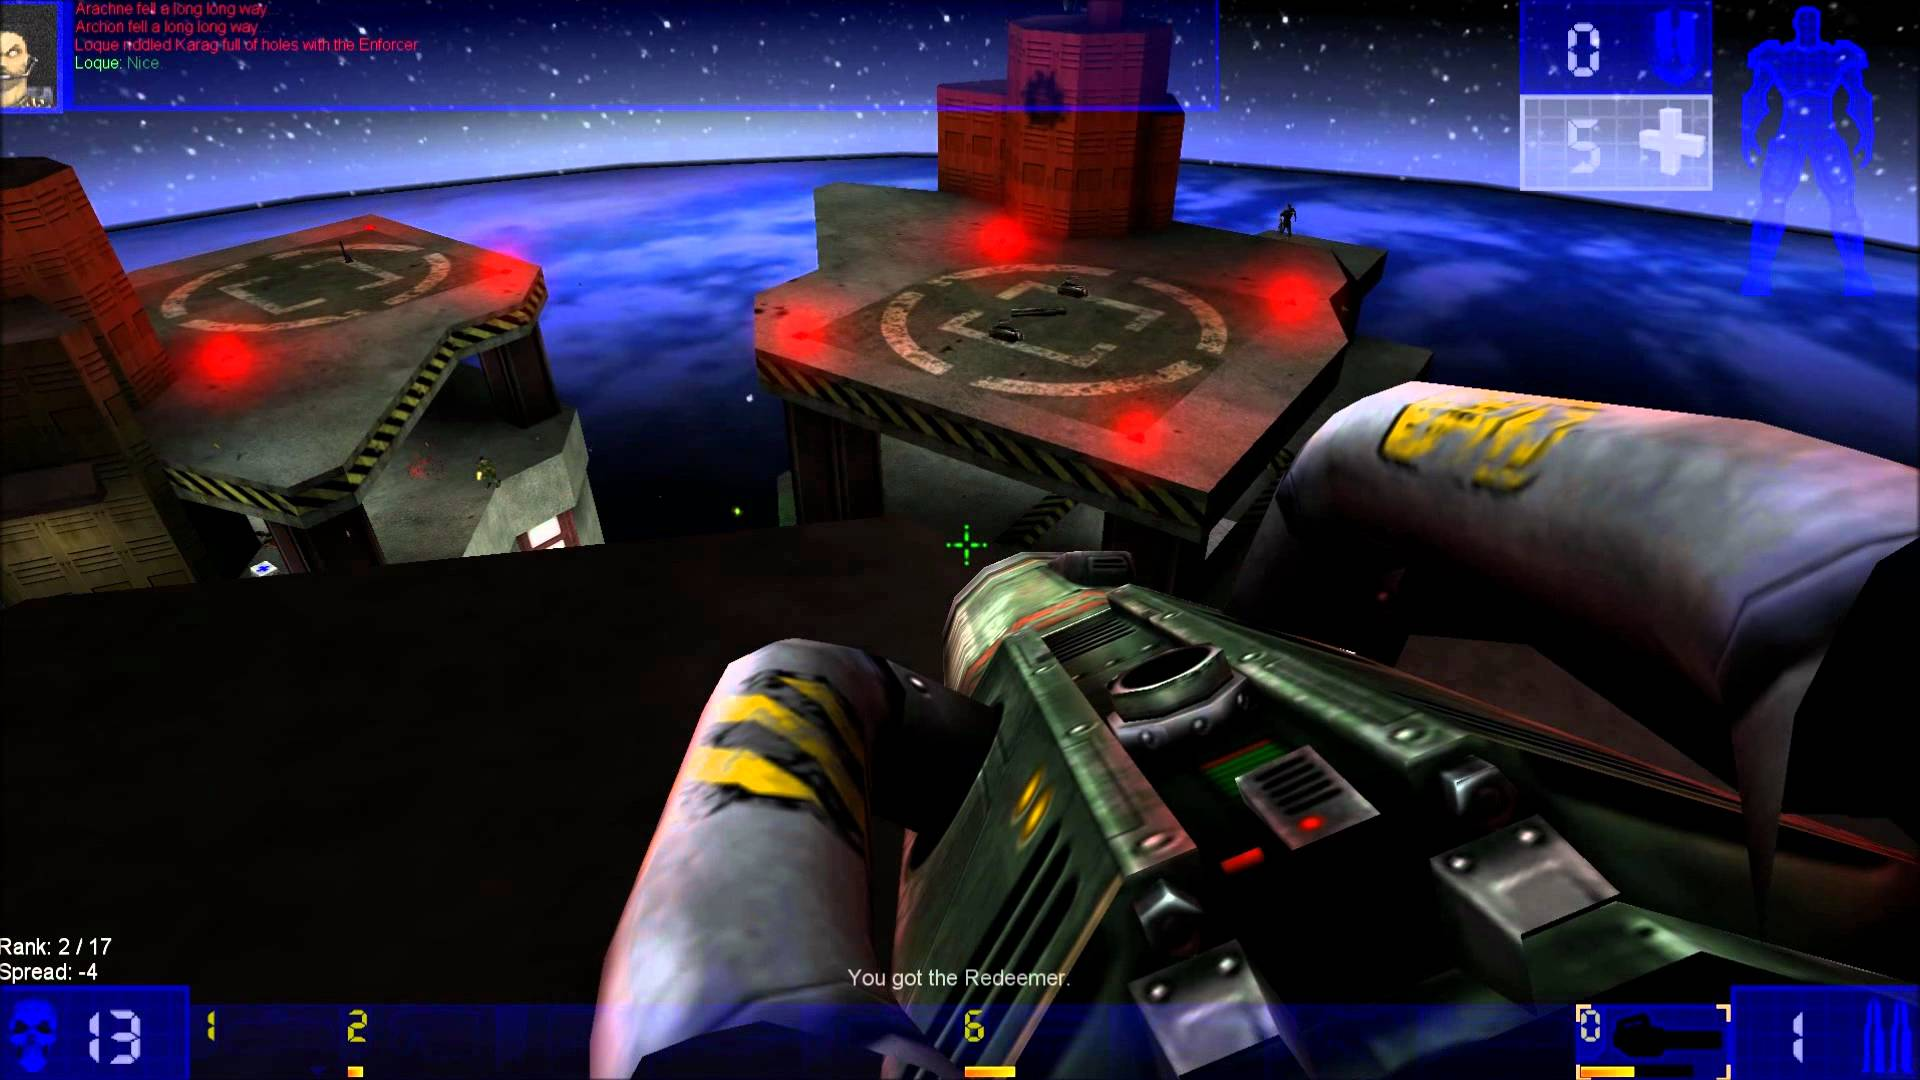 Gameplay footage from Unreal Tournament (1999). The player overlooks three skyscrapers, a giant gun in hand.